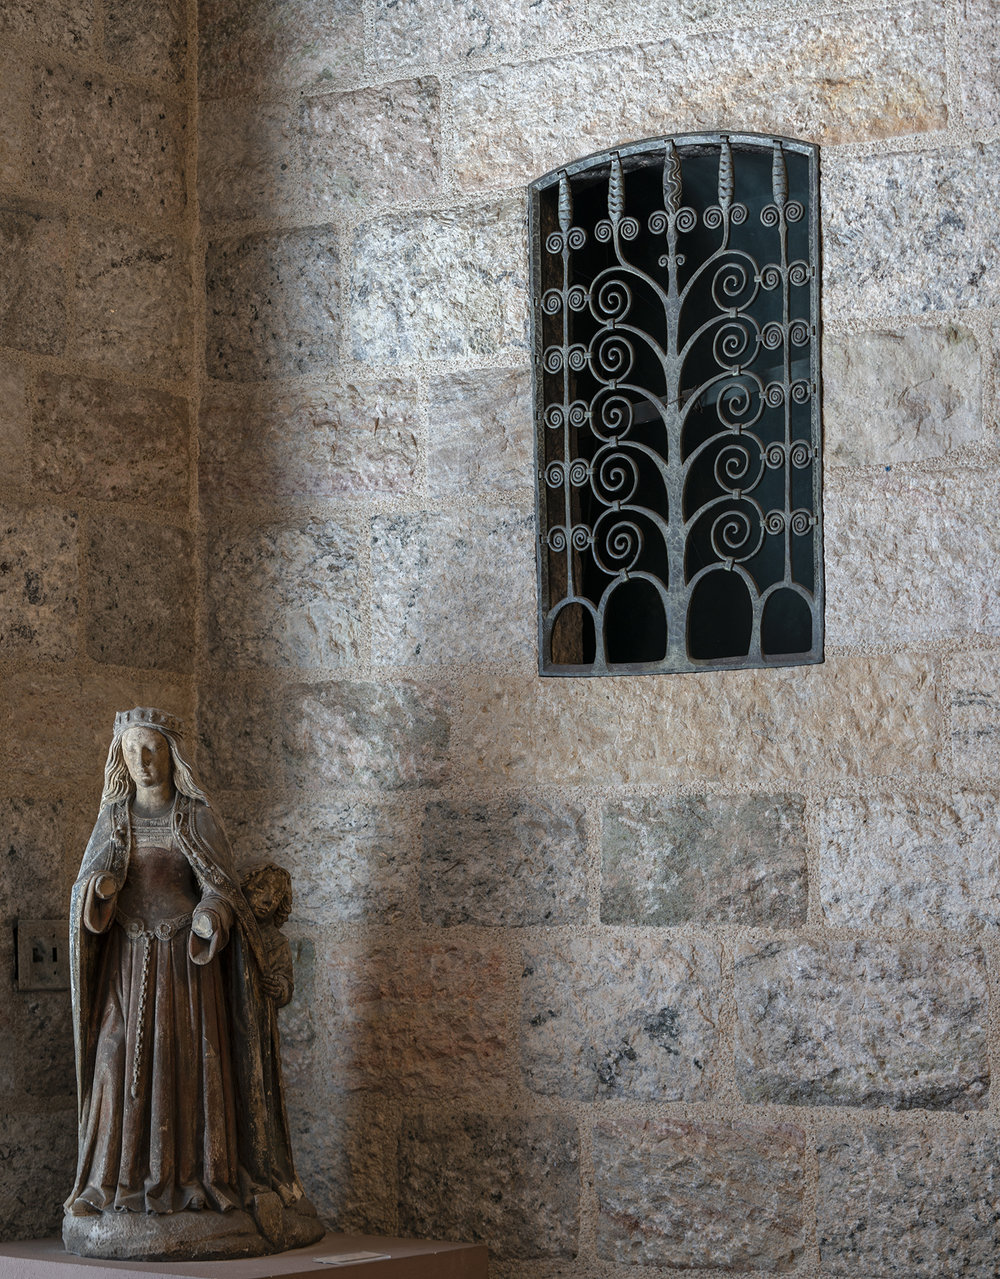 Figure 12: One of the Monel metal heating duct grills in its present location in Glencairn's Upper Hall.